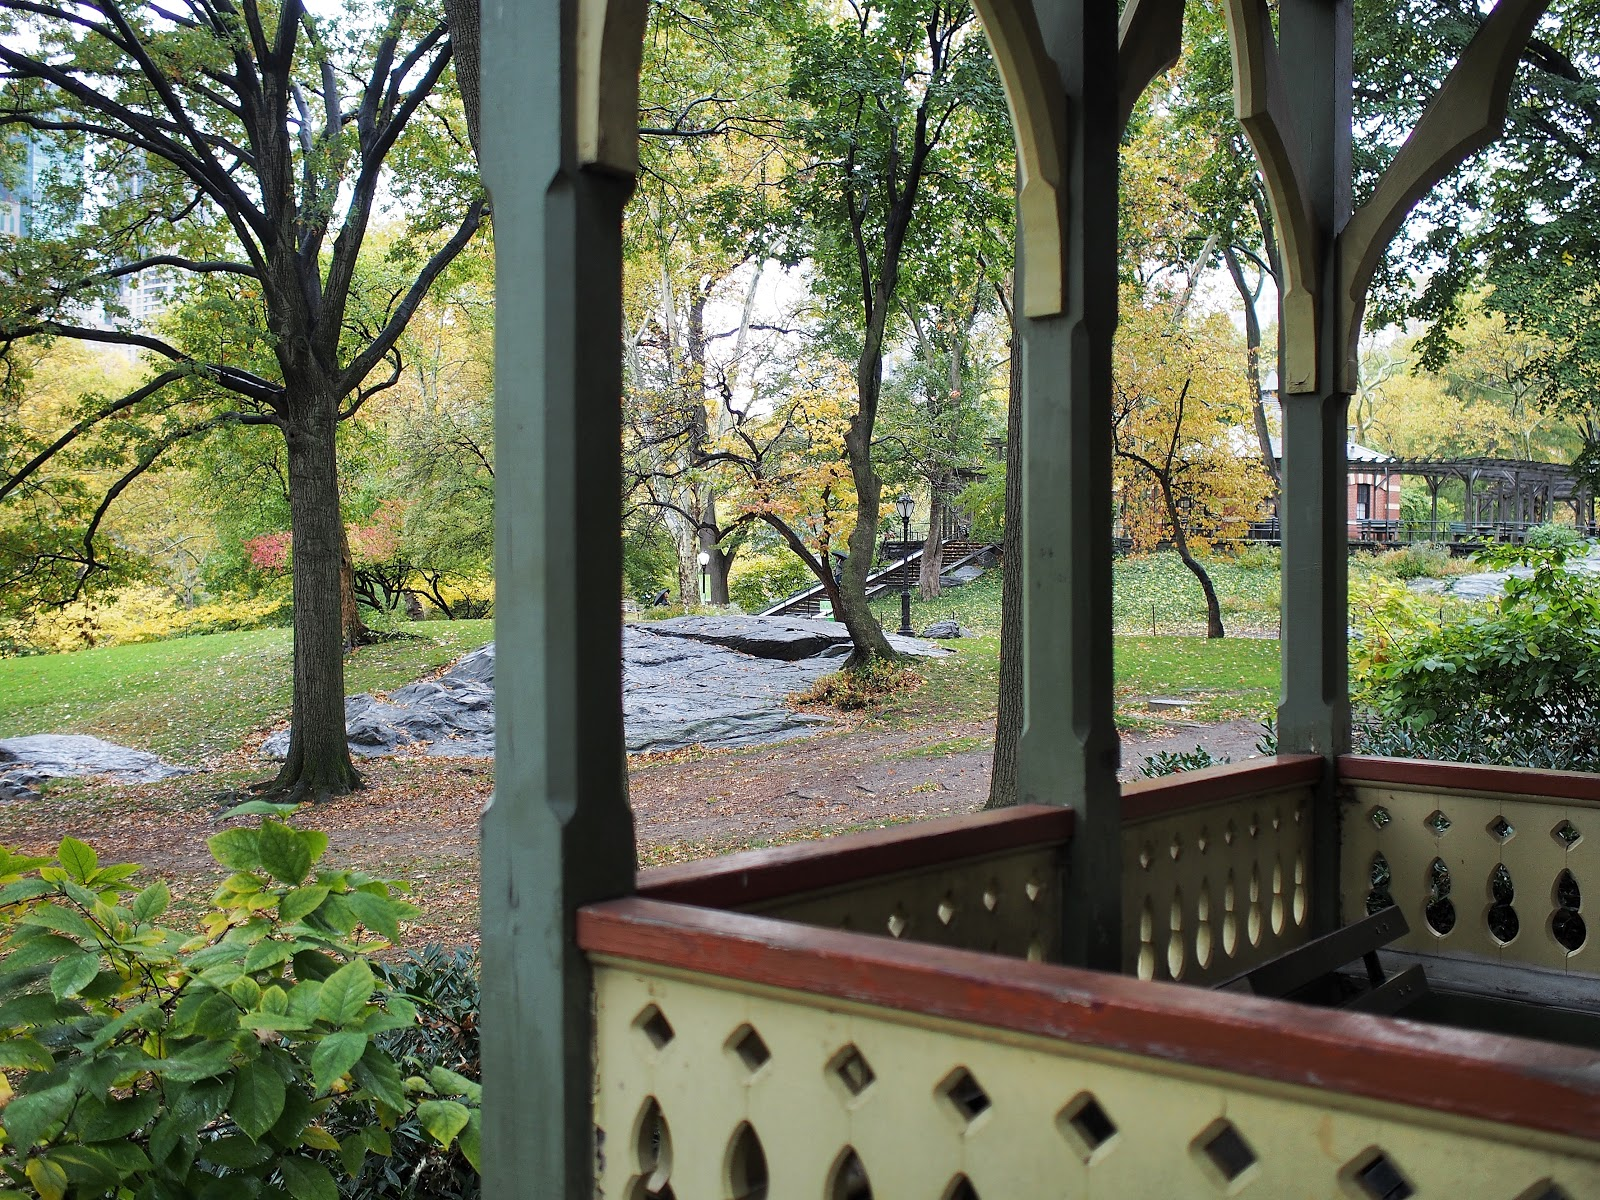 The Dairy, #theDairy #centralpark #fall #nyc #fallfoliage #rainyday 2014